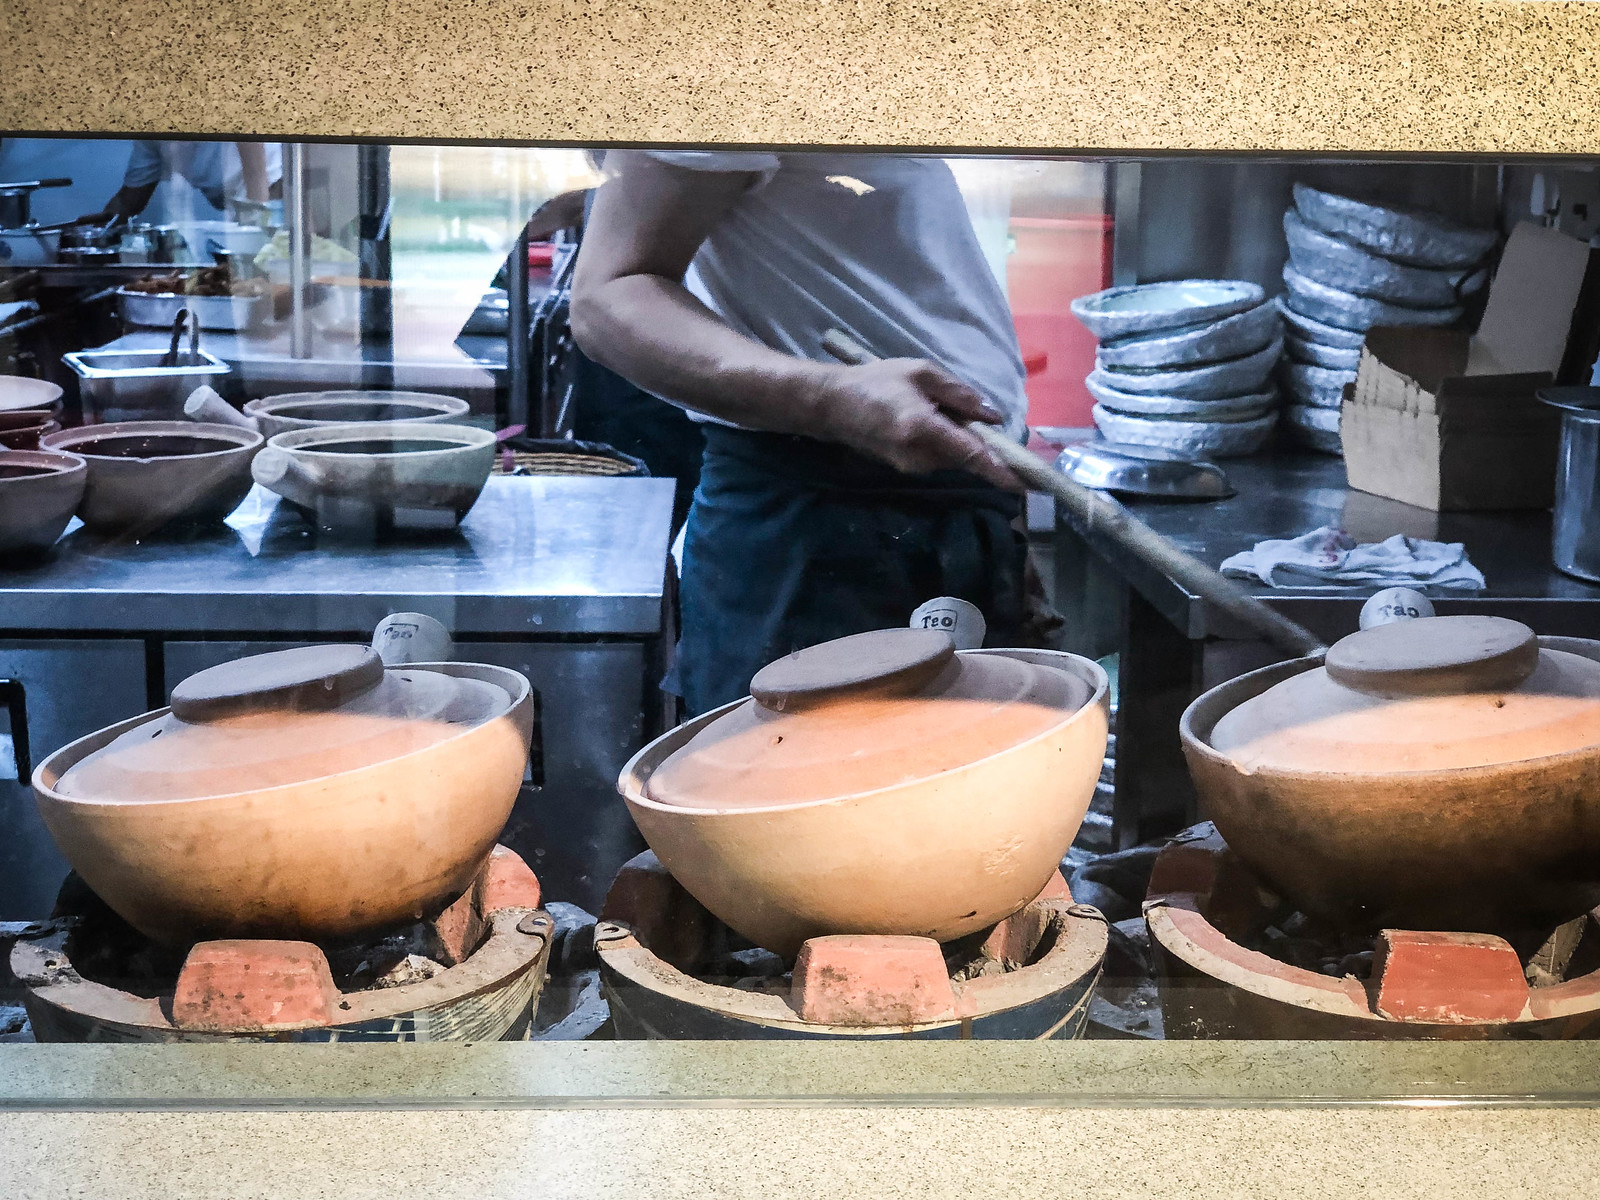 Three claypots cooking on a stove